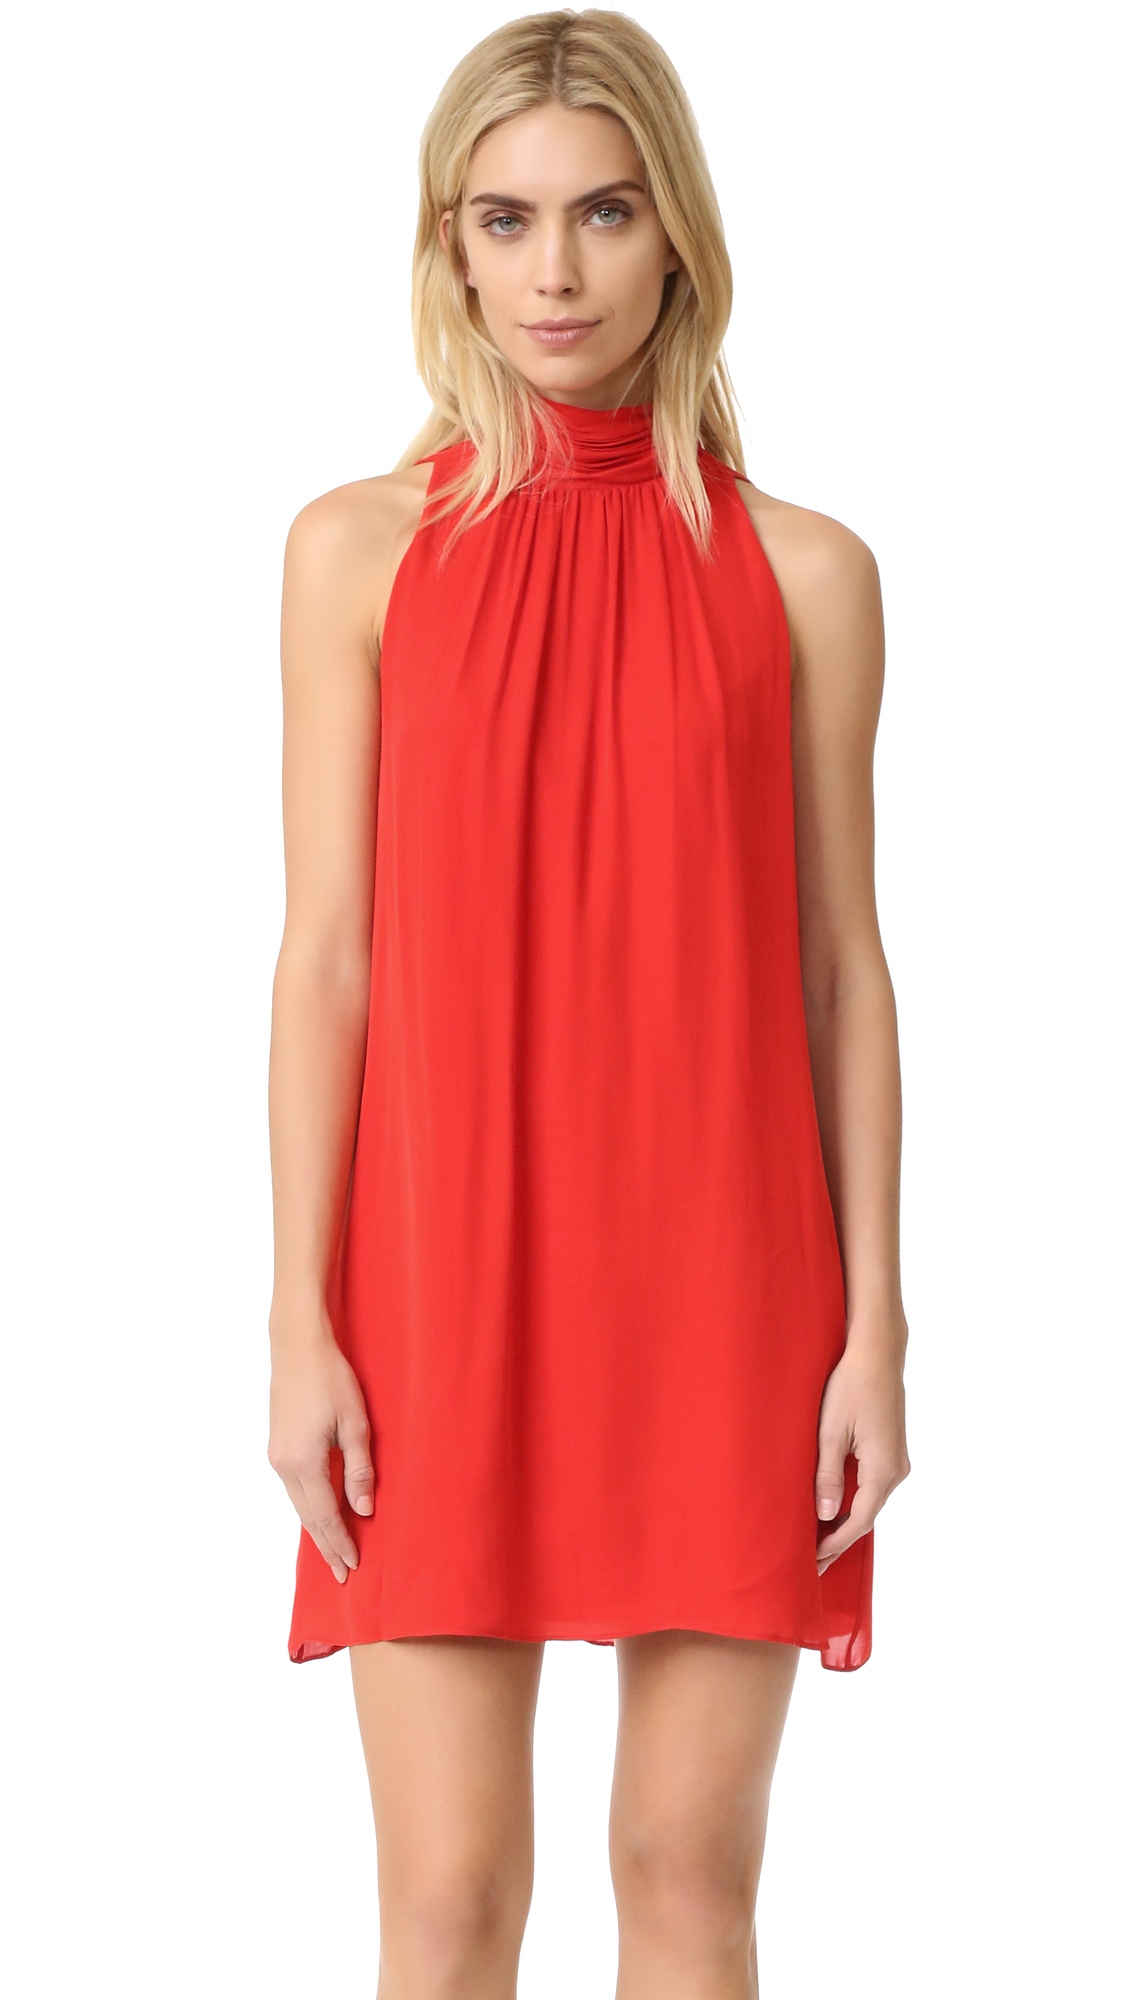 Alice olivia rhiannon dress shopbop save up to 25 use code event18 ombrellifo Images